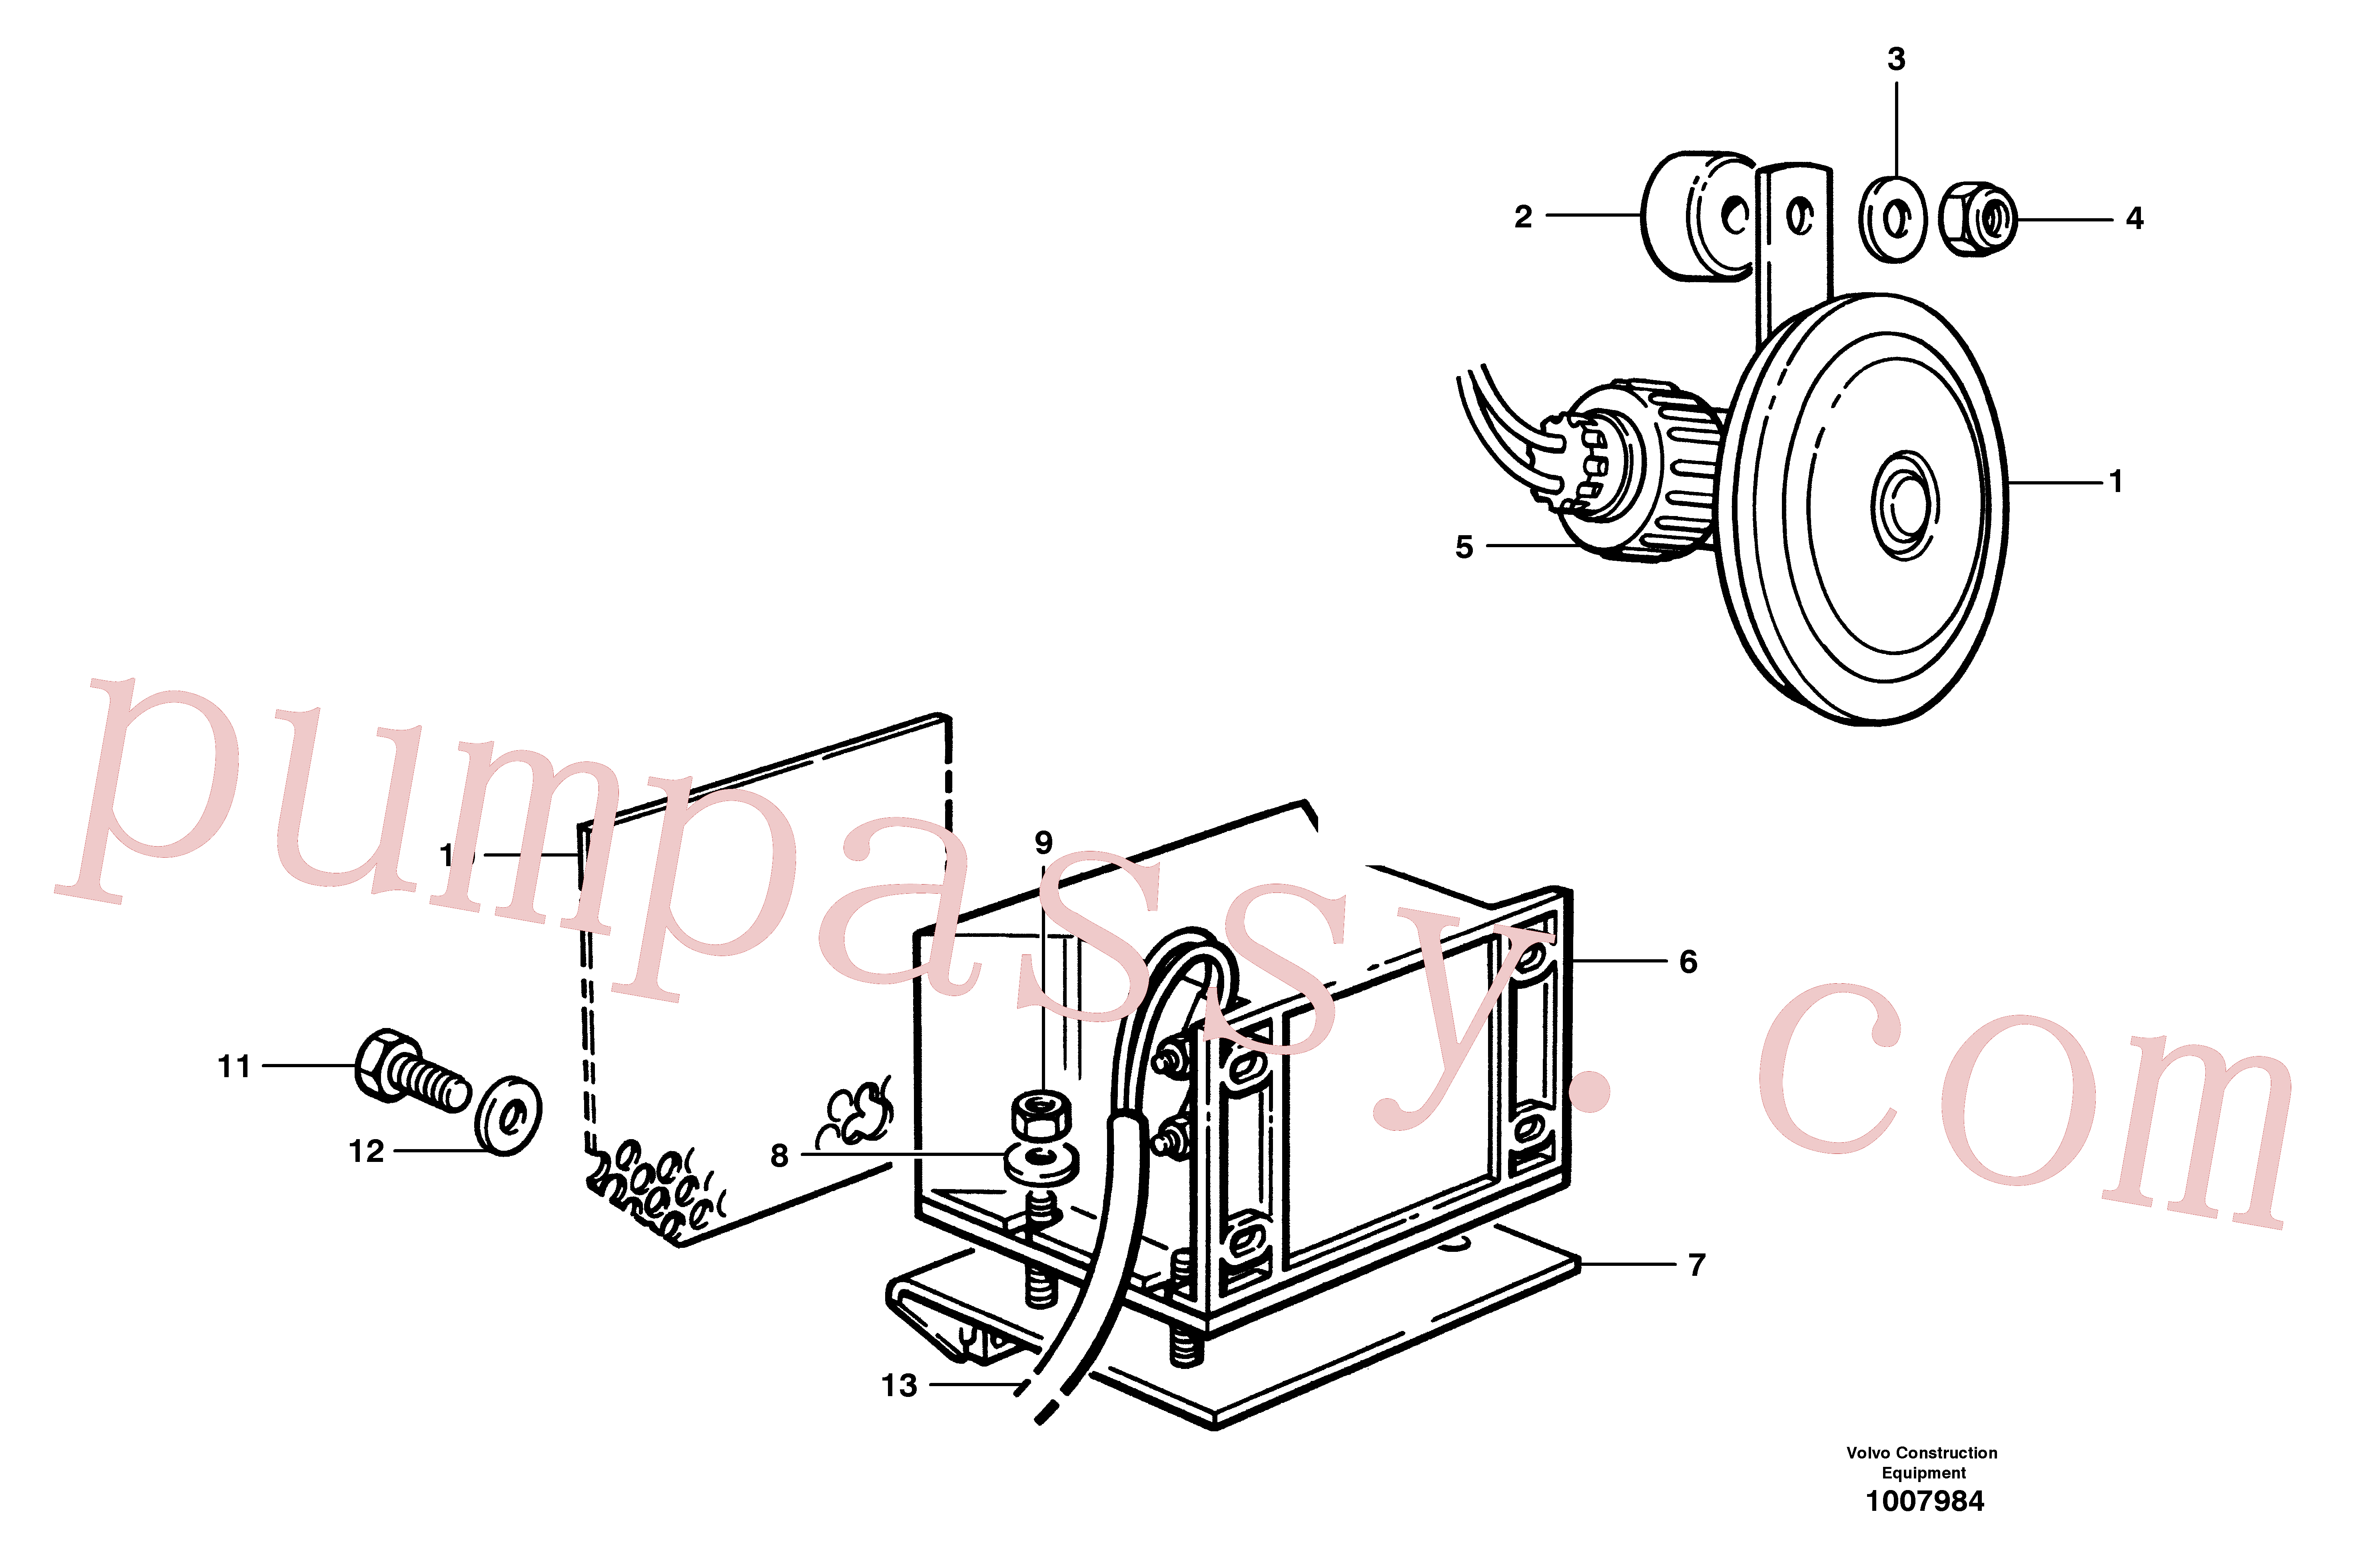 CH350A-10030ZI for Volvo Horn and back-up warning(1007984 assembly)